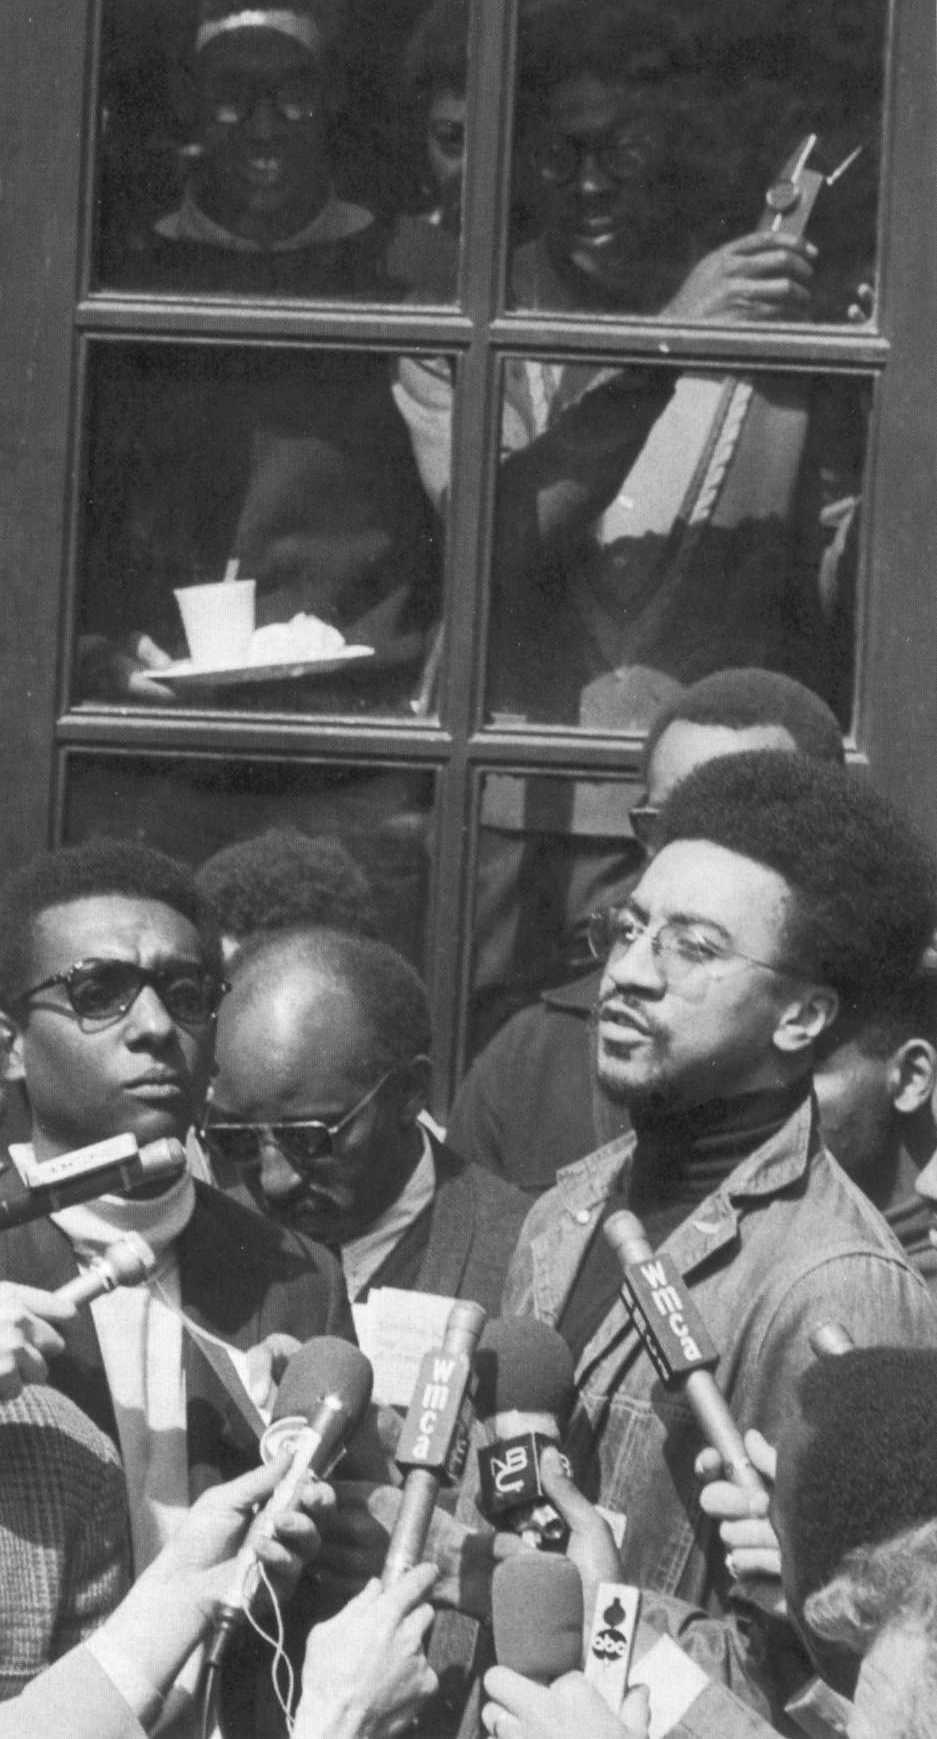 Columbia University 1968 - H. Rap Brown and Stokely Carmichael